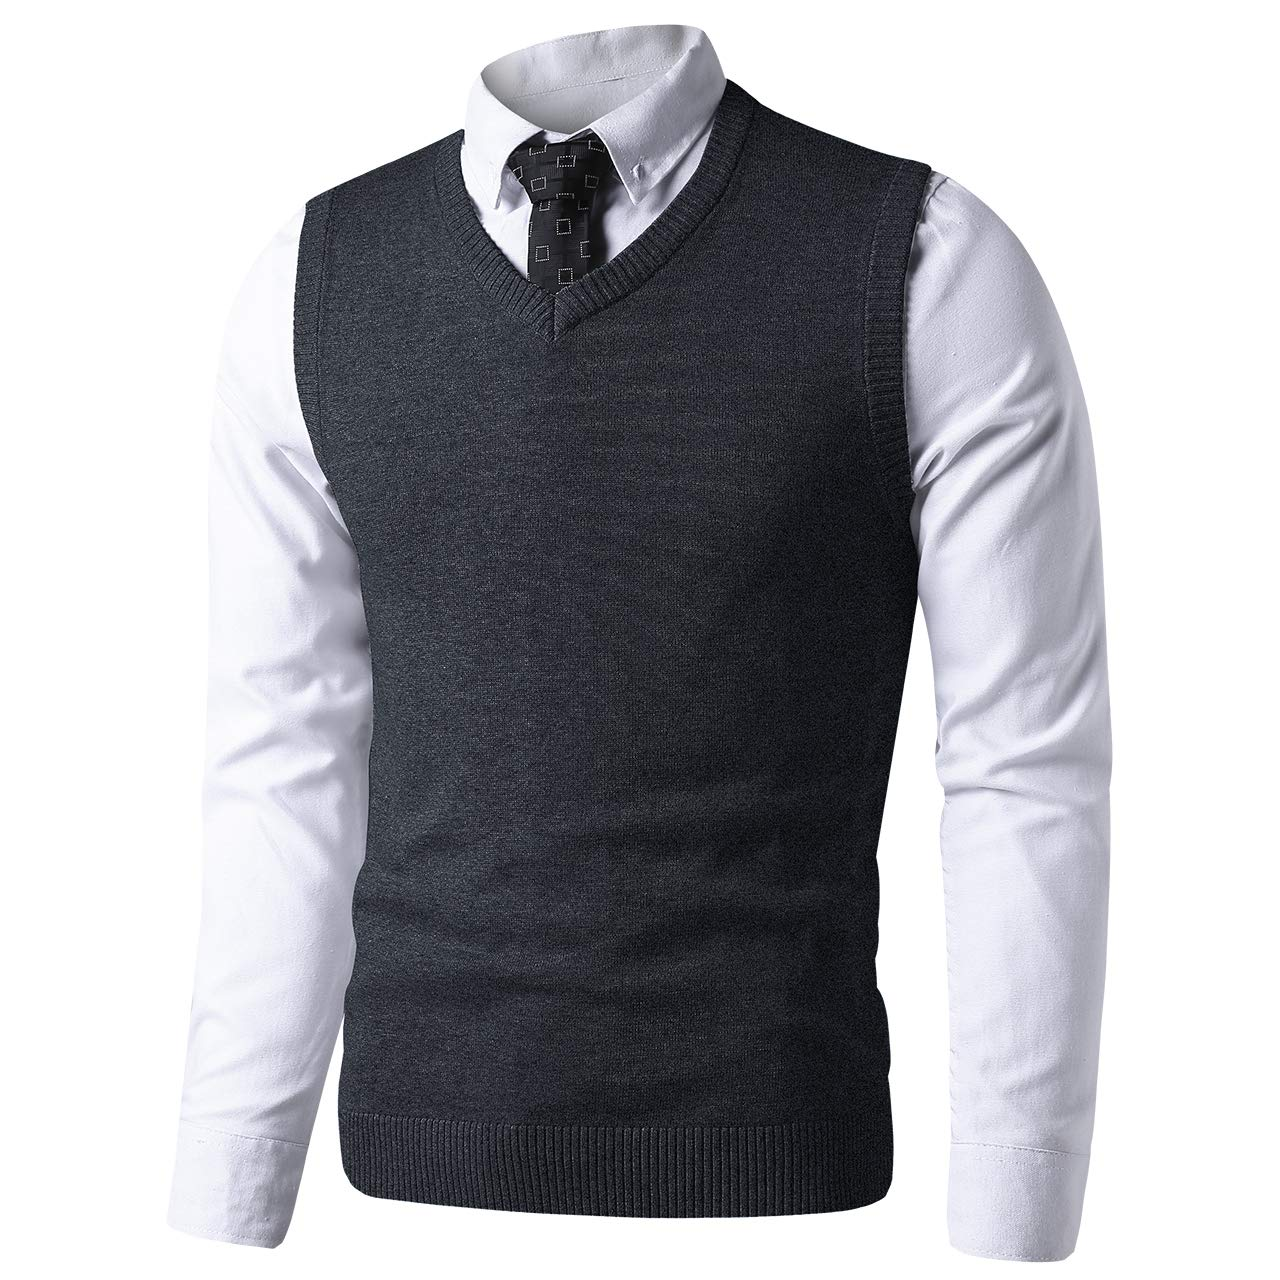 LTIFONE Mens Slim Fit V Neck Sweater Vest Basic Plain Short Sleeve Sweater Pullover Sleeveless Sweaters with Ribbing Edge(Dark Grey,M) by LTIFONE